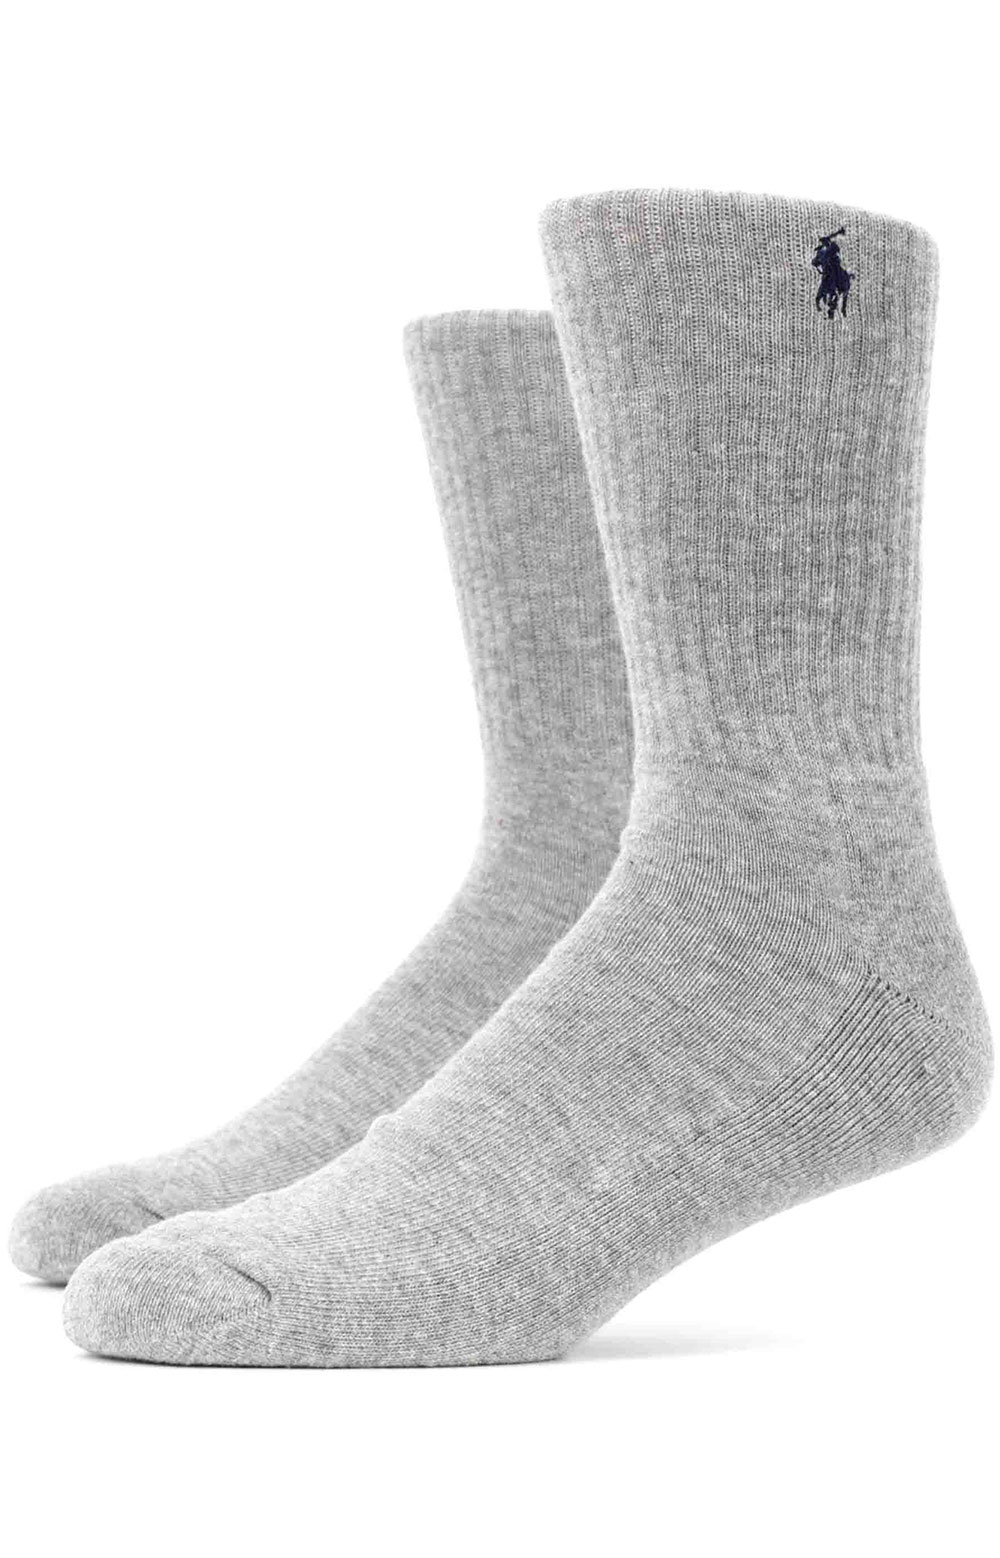 Cushioned Crew Socks 6 Pack - Grey Assorted  3